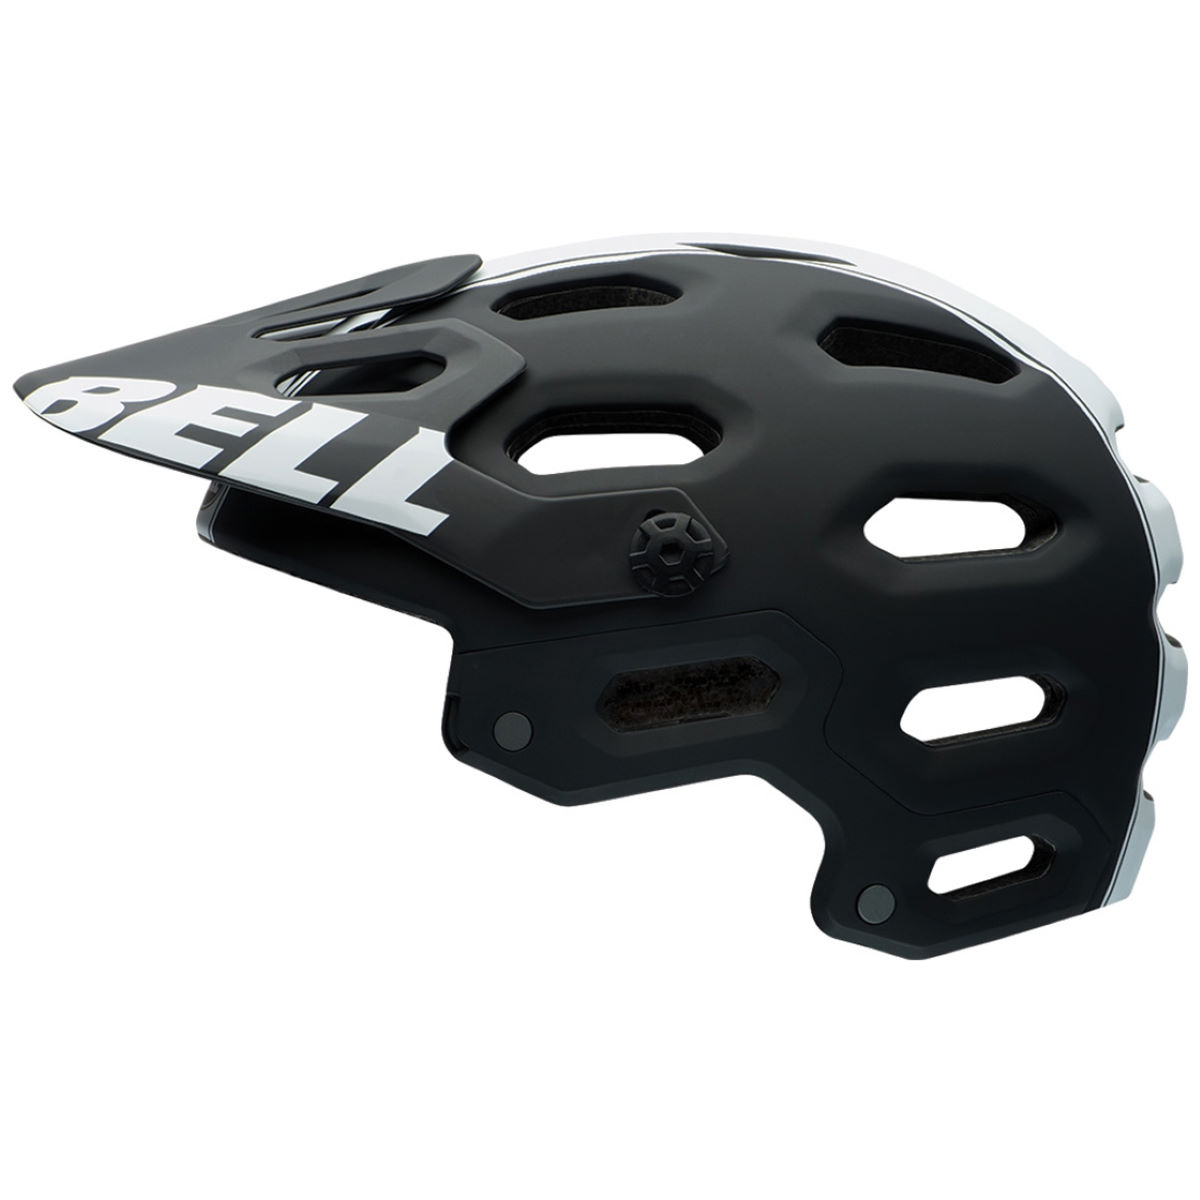 Casque VTT Bell Super 2 - S Matt Black/White Casques VTT